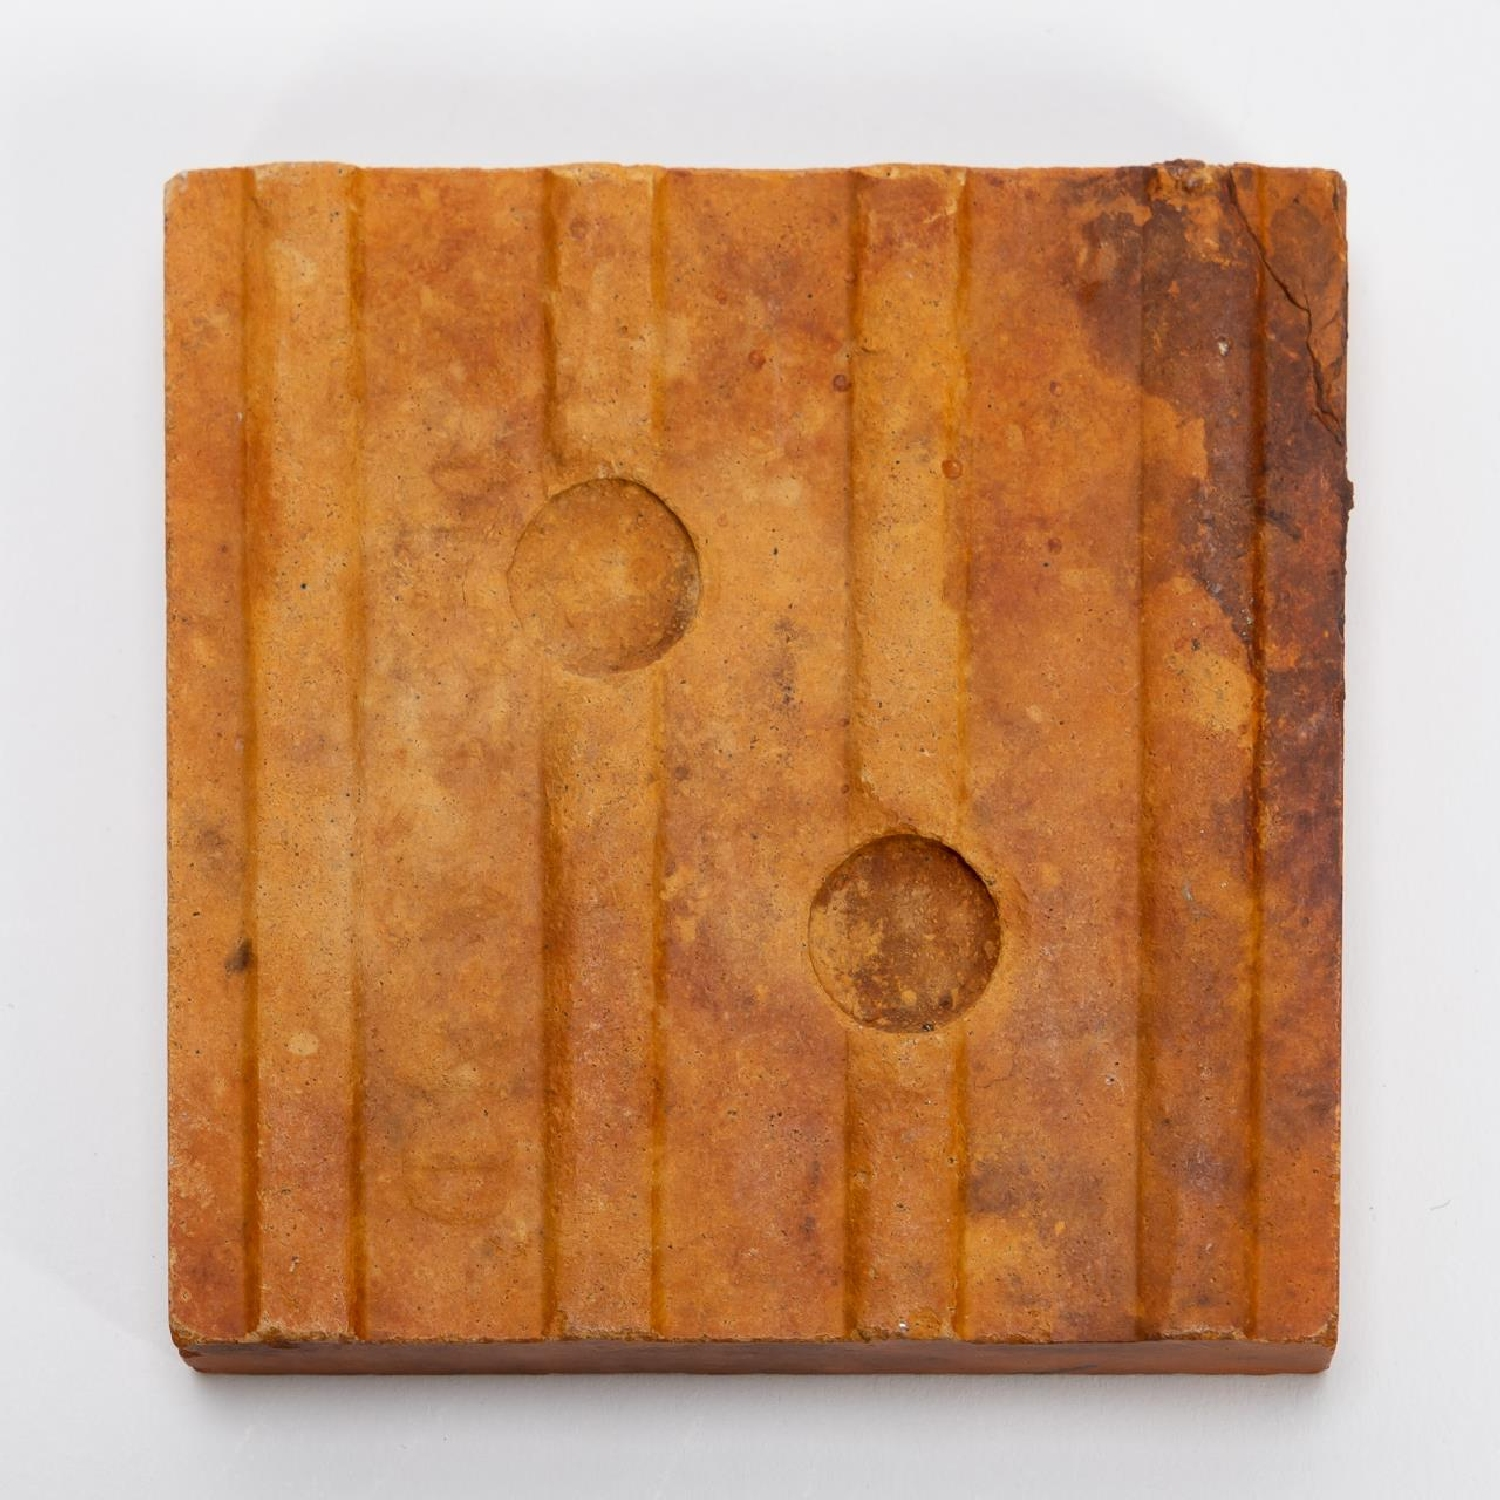 RMS CARPATHIA, SALVAGED SMALL RED FLOOR TILE - Image 2 of 6